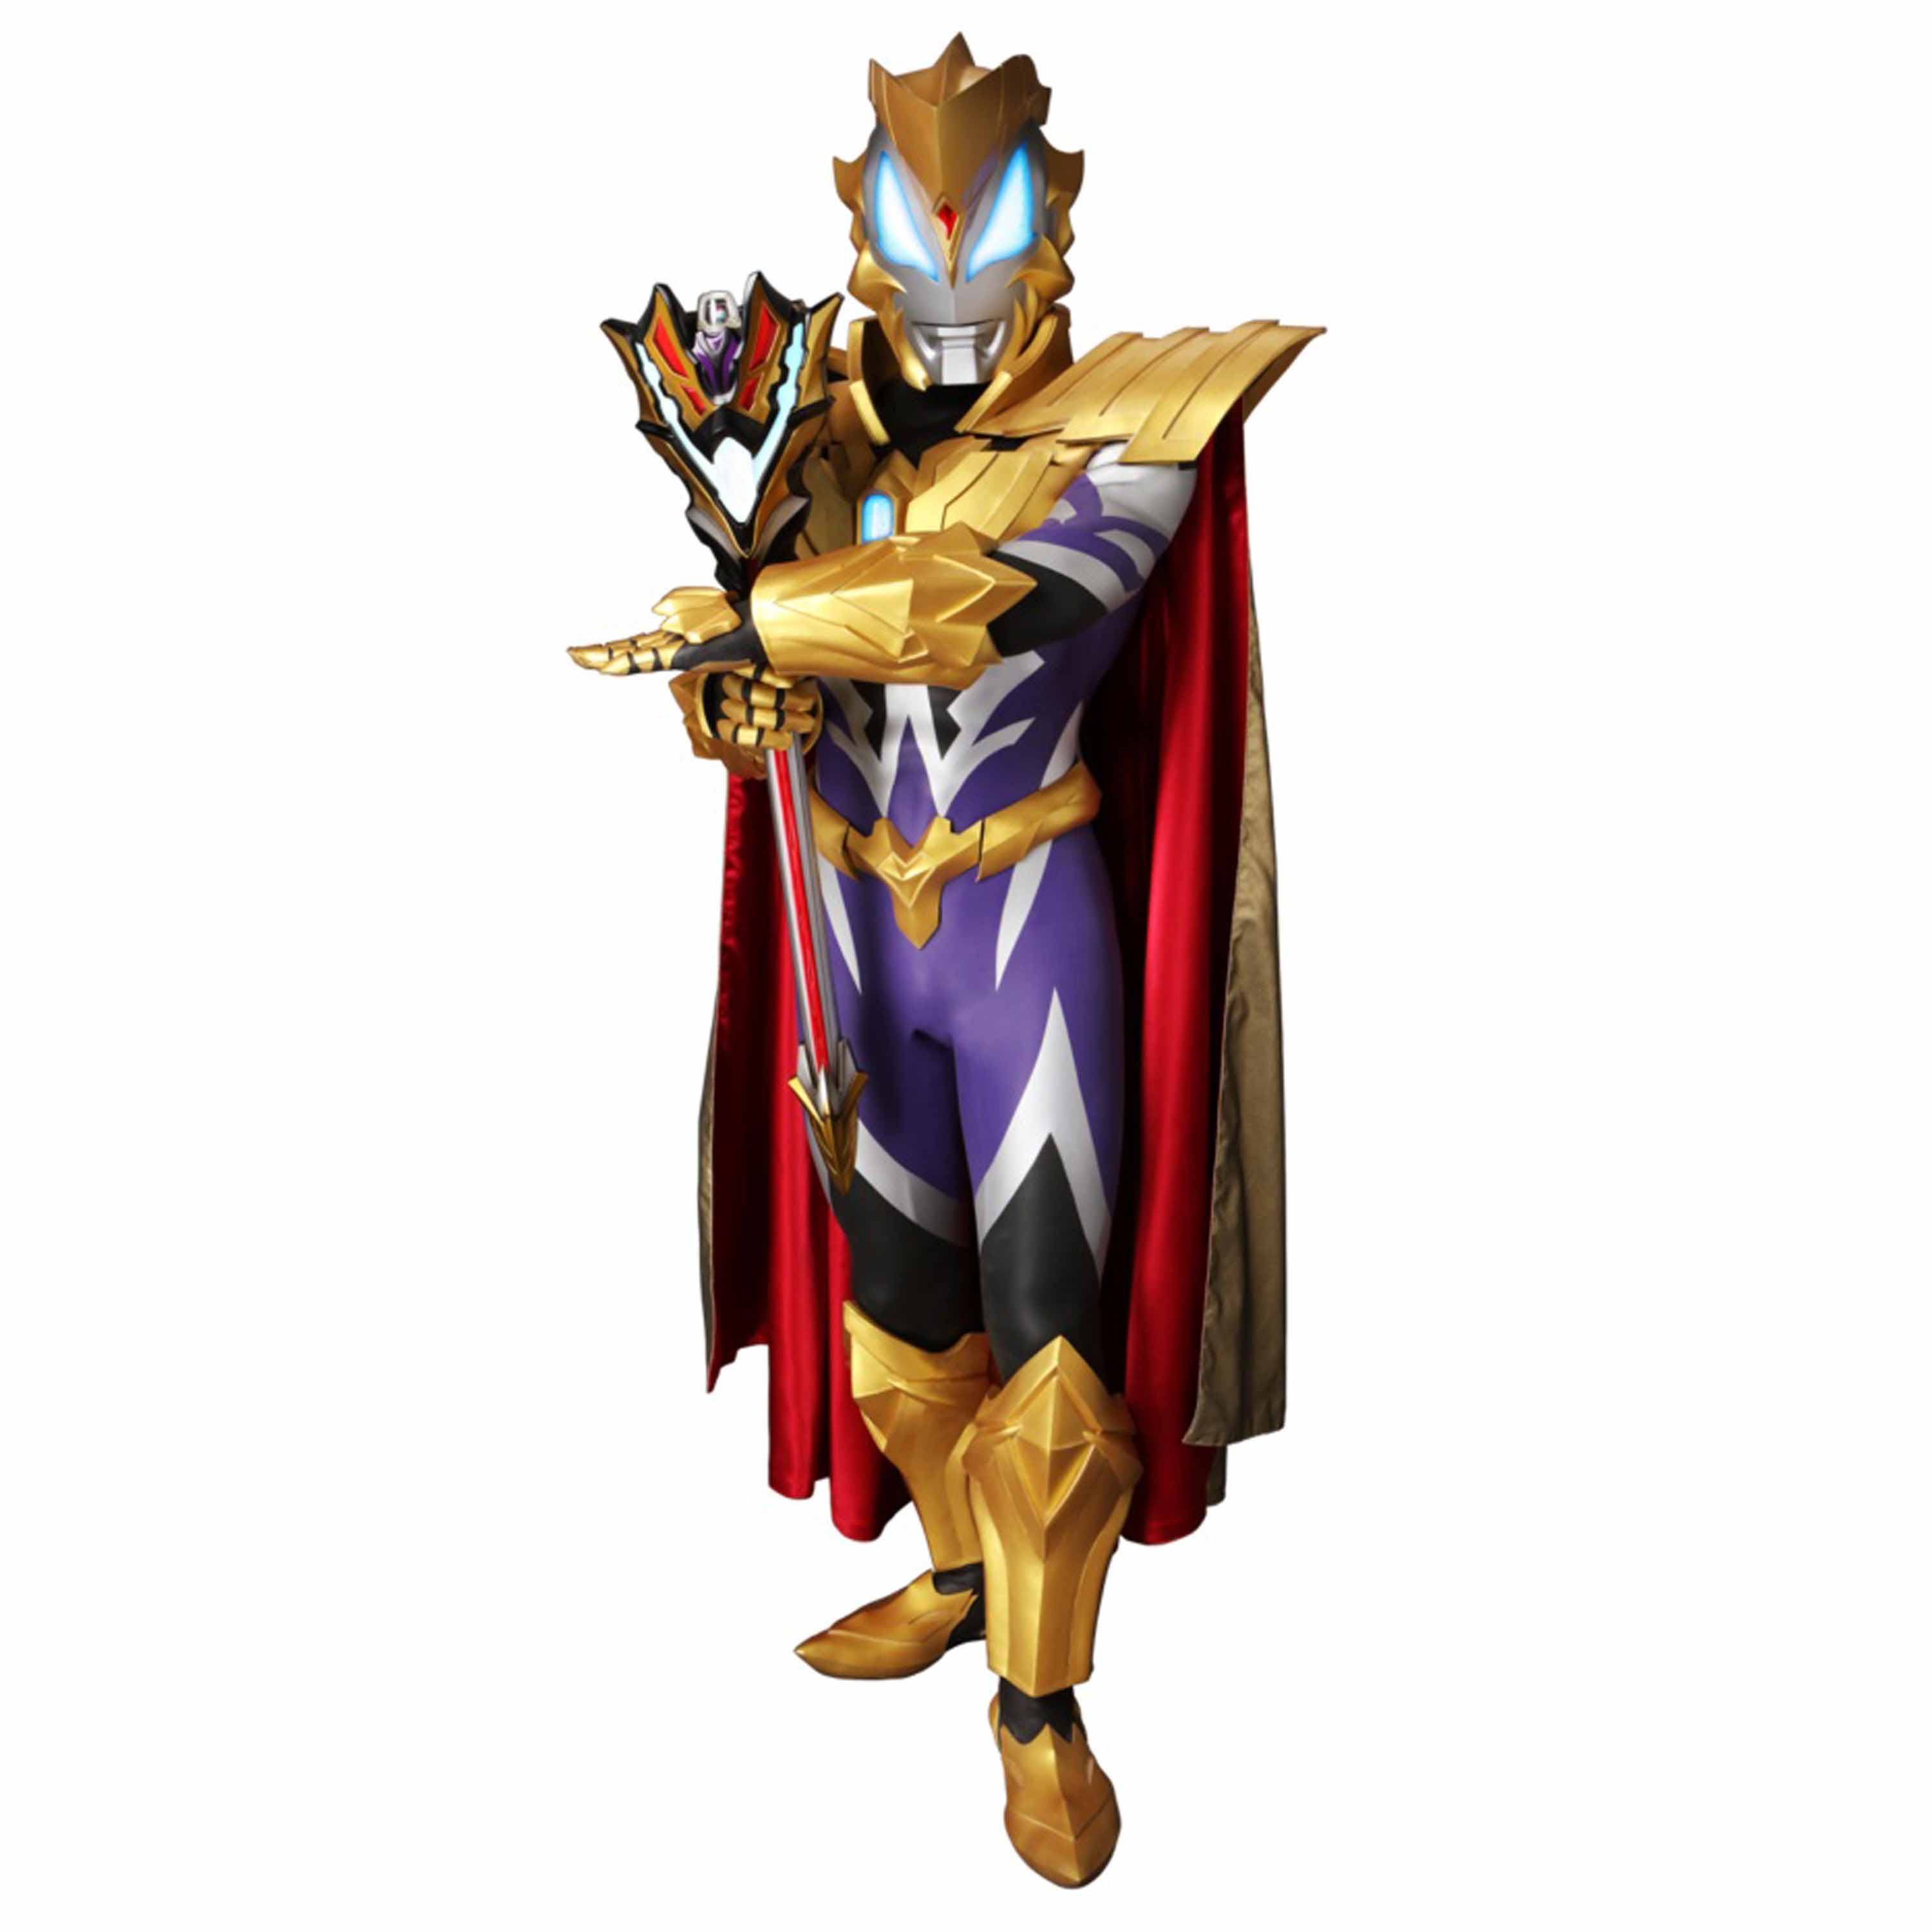 UH SOFVI ULTRAMAN GEED ROYAL MEGA MASTER